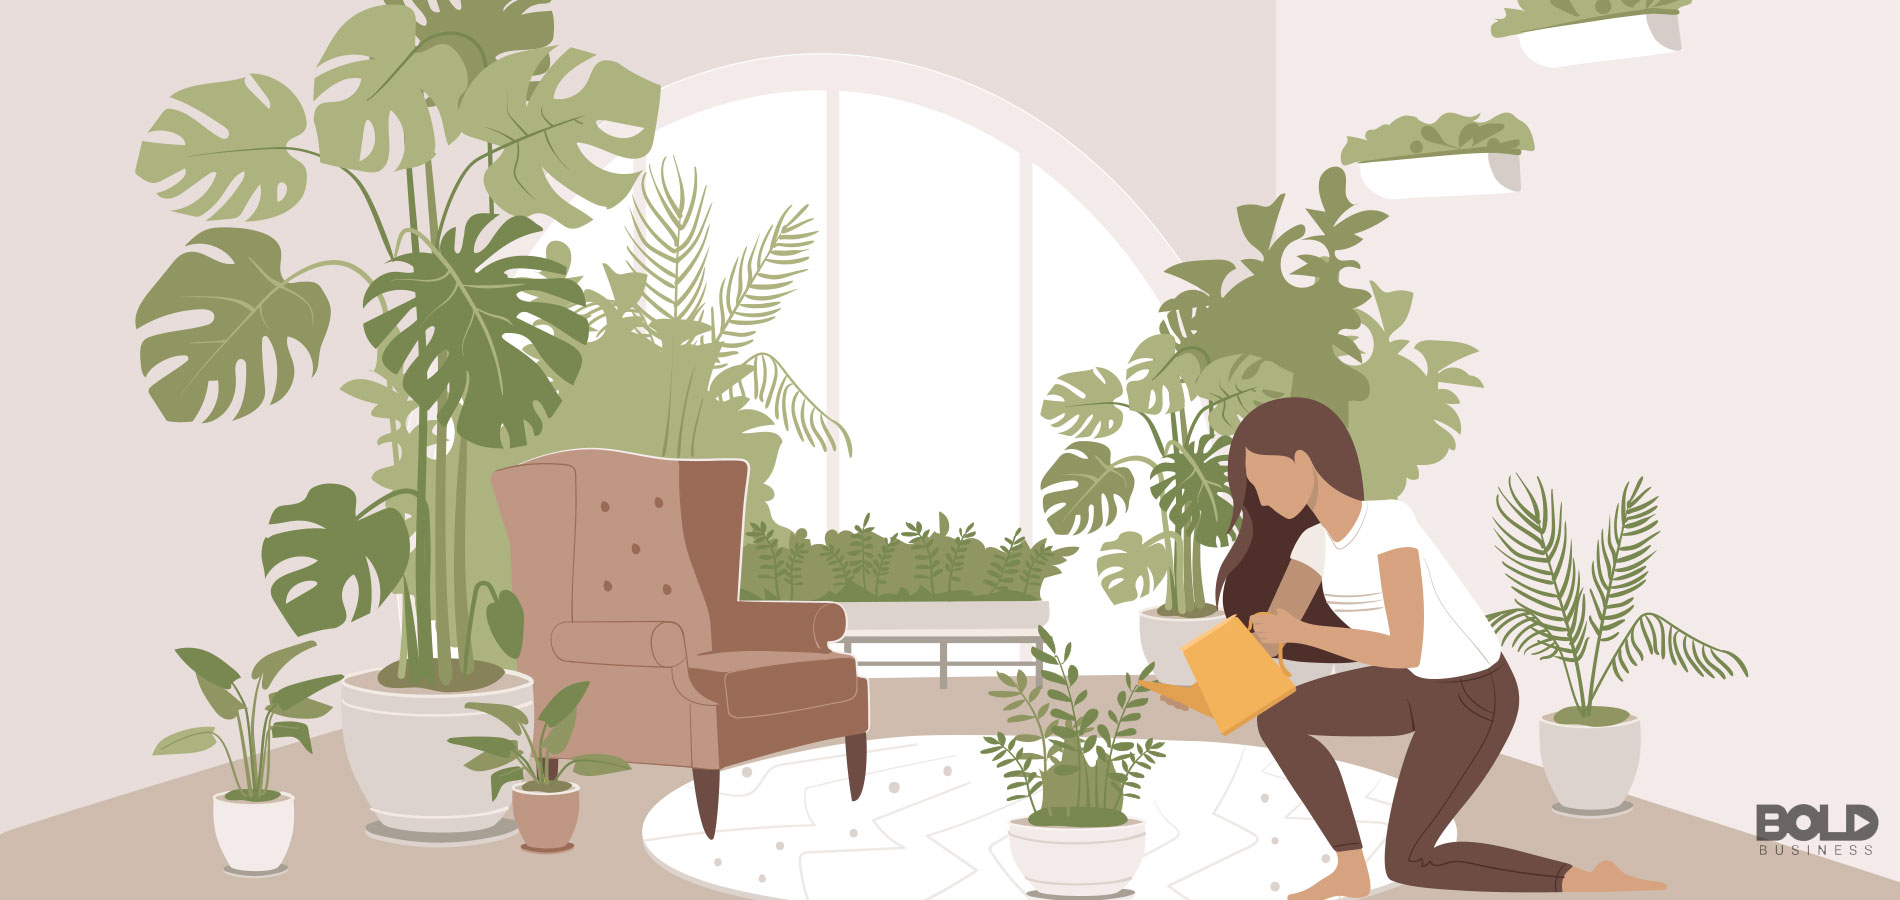 A cartoon of a woman growing her own jungle